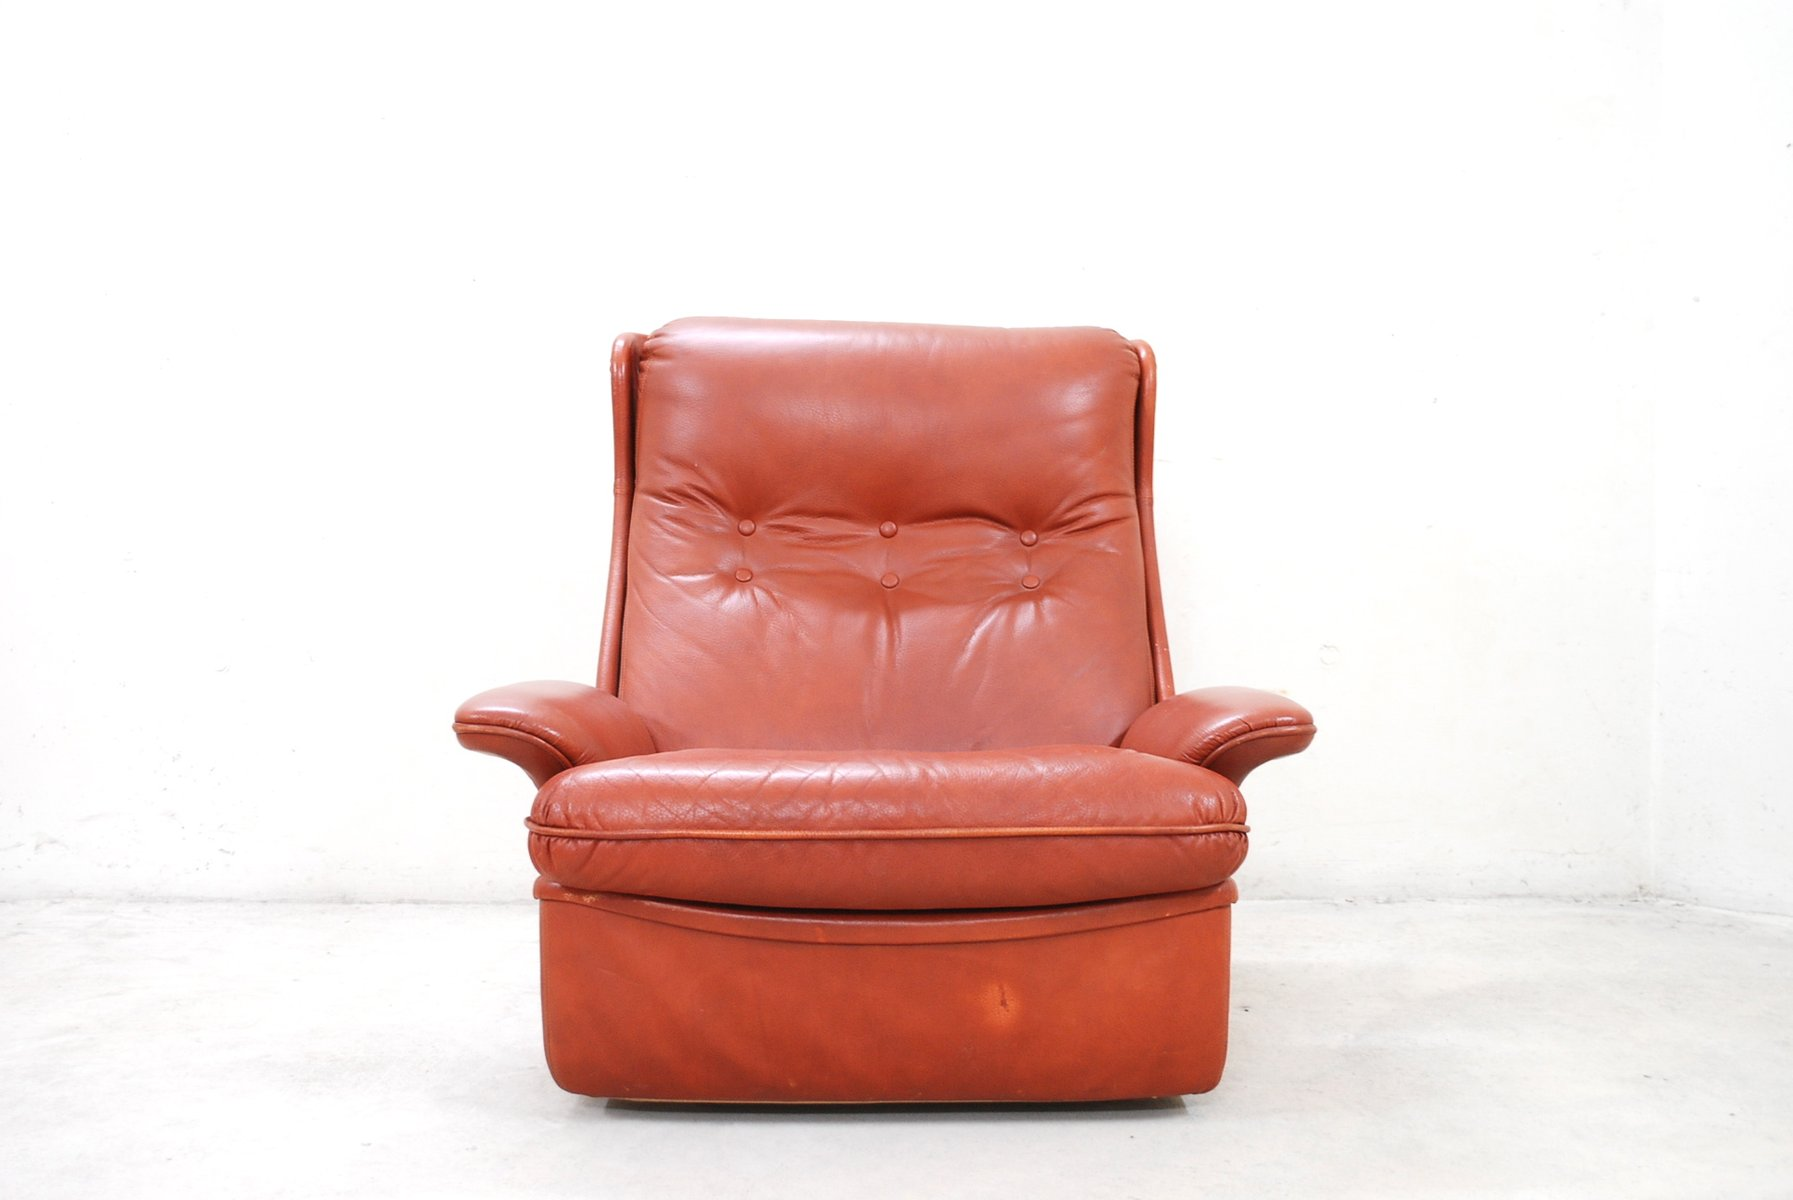 Red Leather Lounge Chairs And Ottoman From Airborne For Sale At Pamono